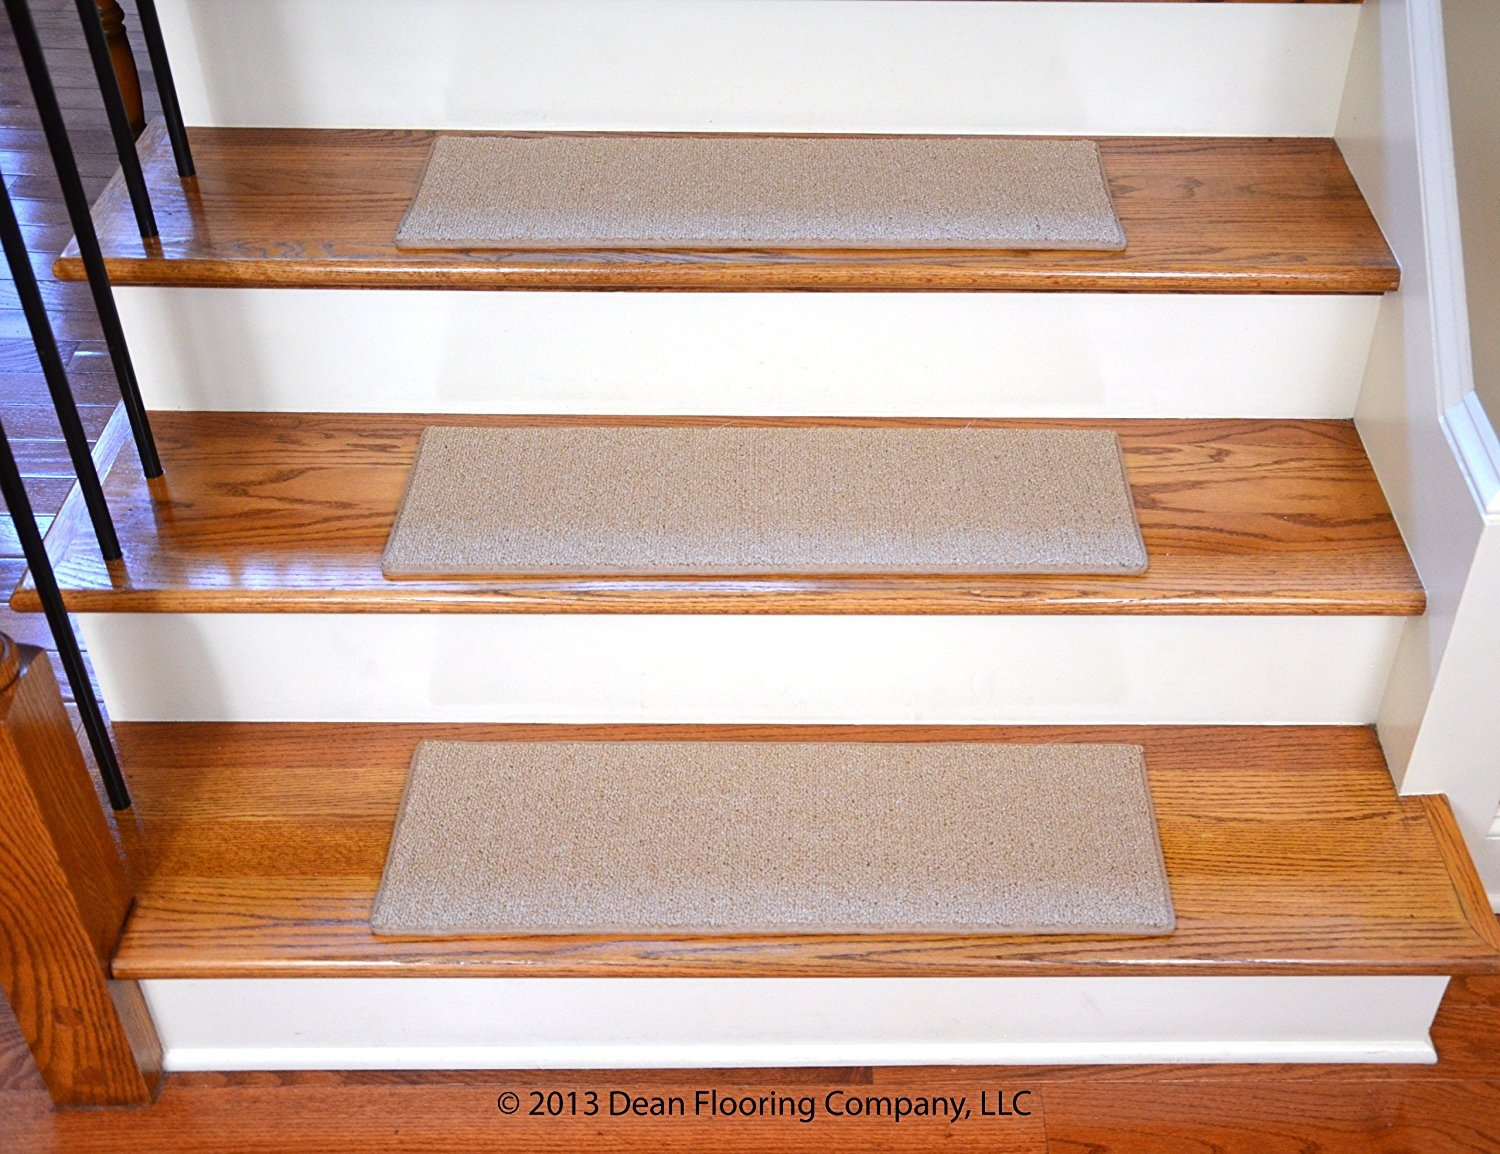 Dean Non Slip Tape Free Pet Friendly Diy Carpet Stair Treadsrugs Within Stair Tread Carpet Adhesive (#9 of 20)